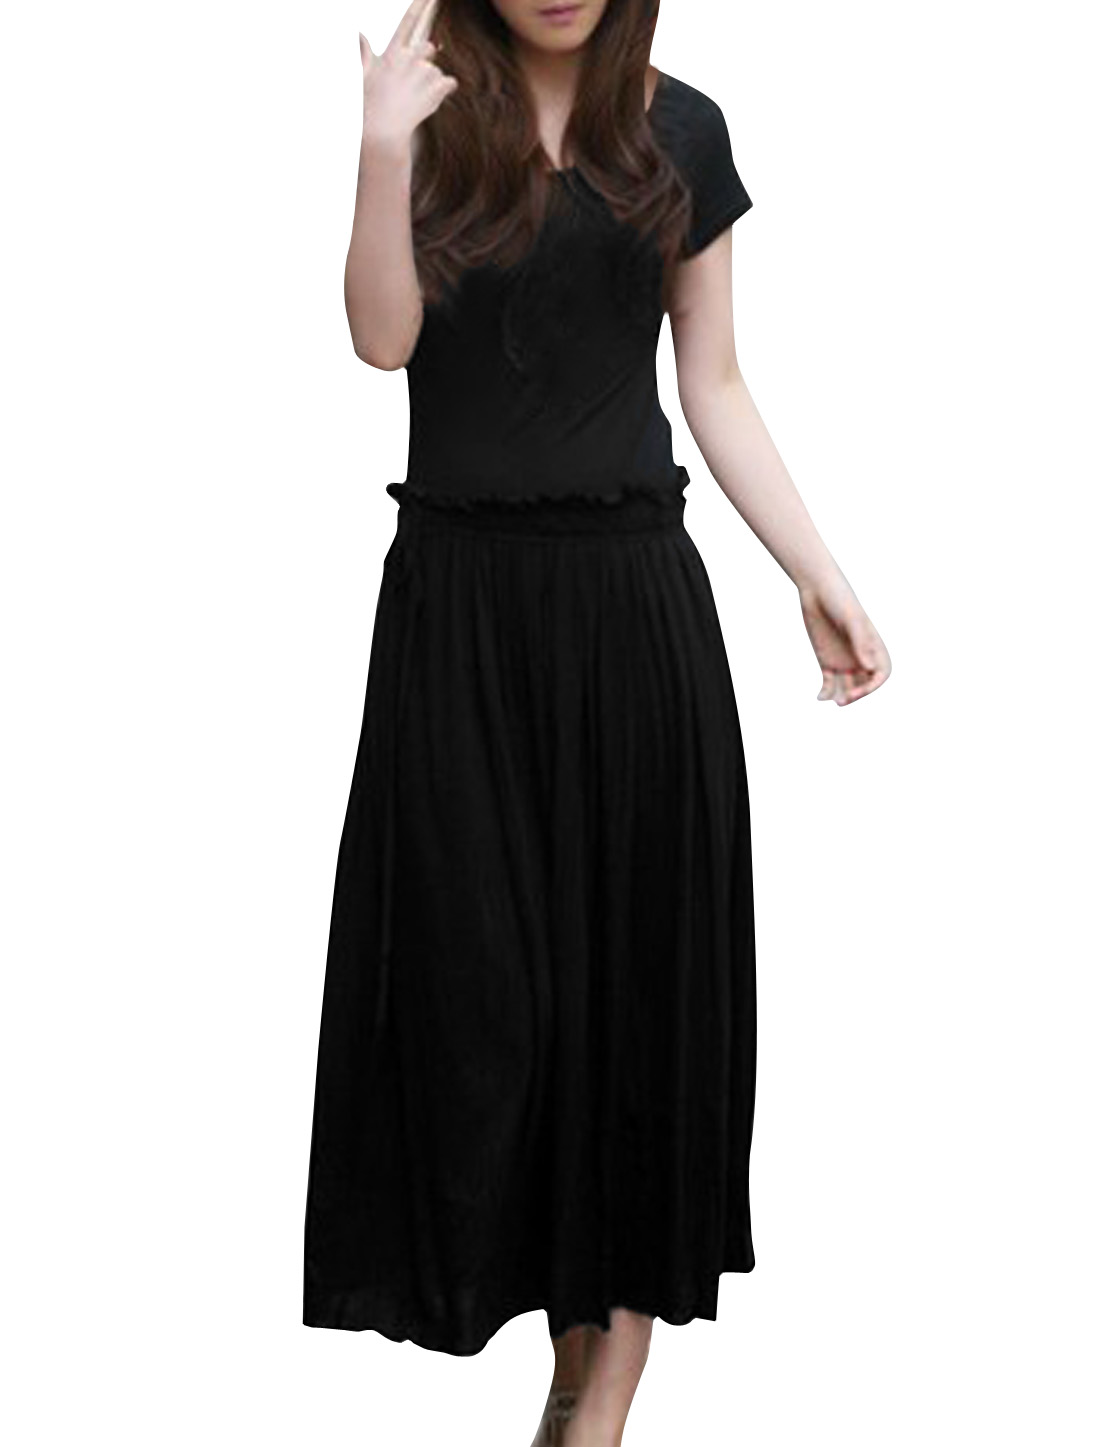 Ladies Scoop Neck Short Sleeve Drawstring Waist Design Black Dress S